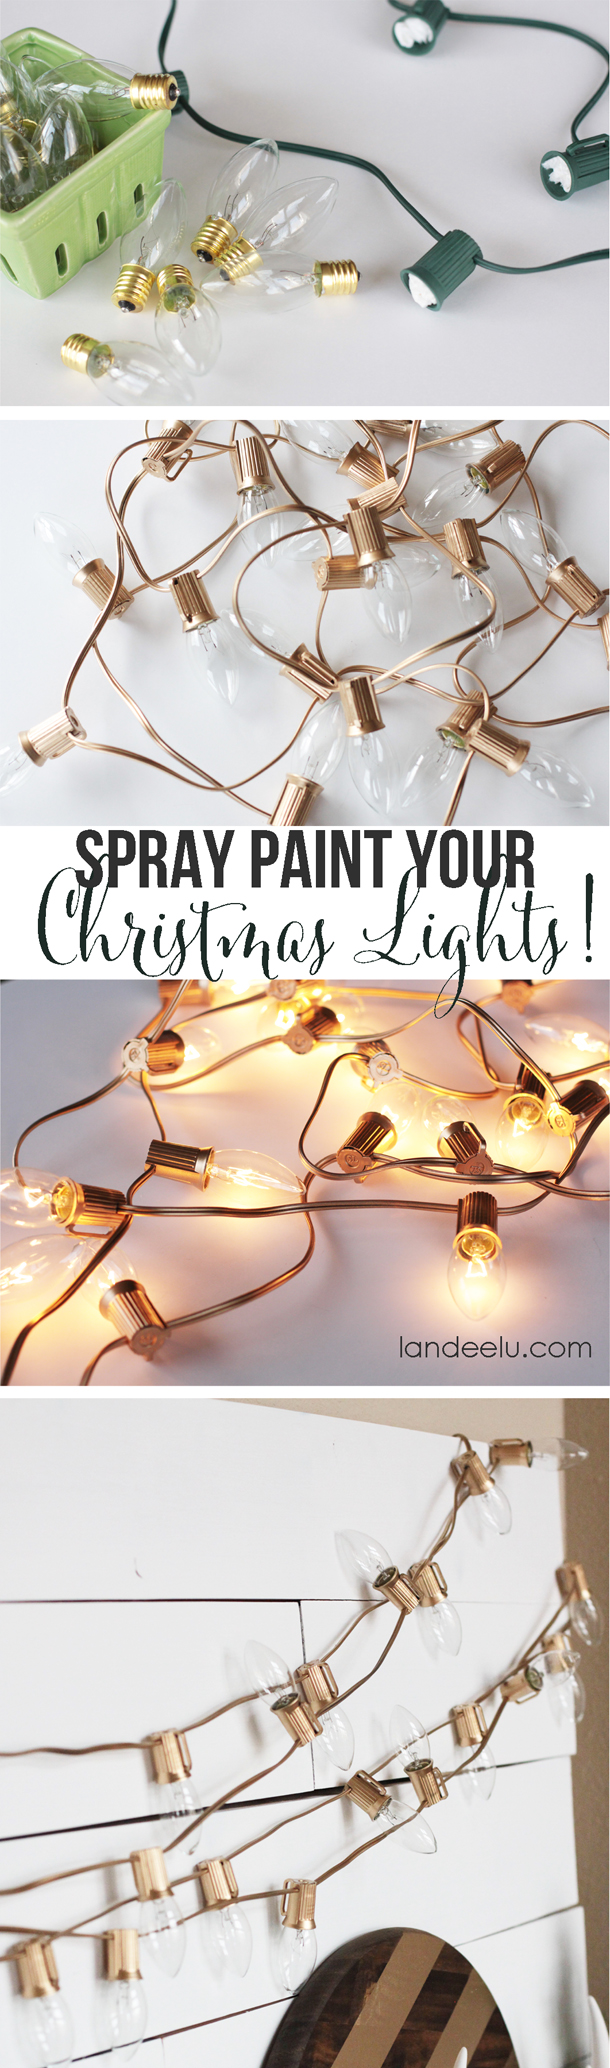 Spray Paint gold Christmas Lights | 25+ Oscar Party Ideas